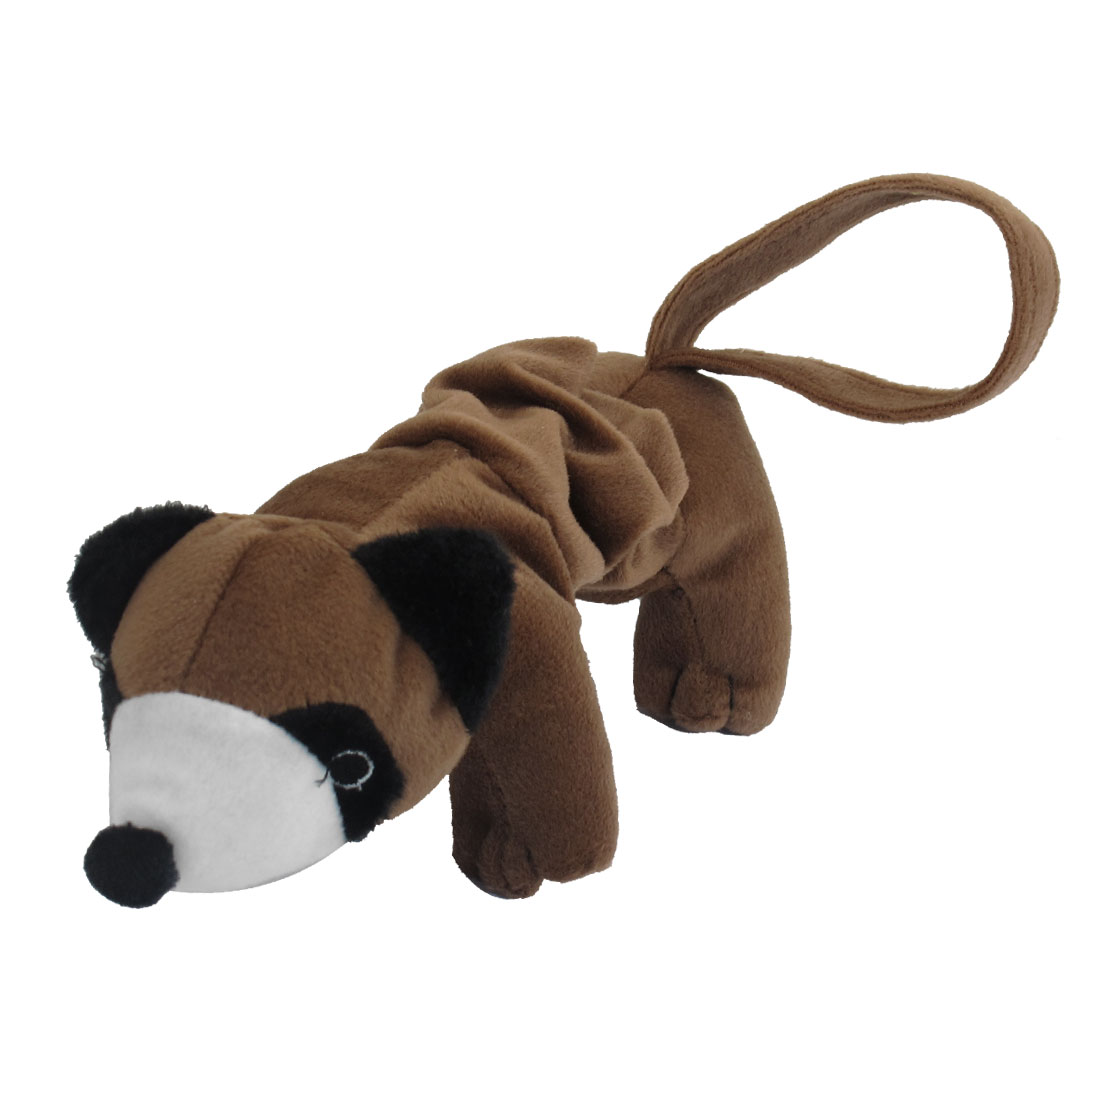 Child Kid Gift Soft Plush Otter Super Cute Squeaky Toy Brown